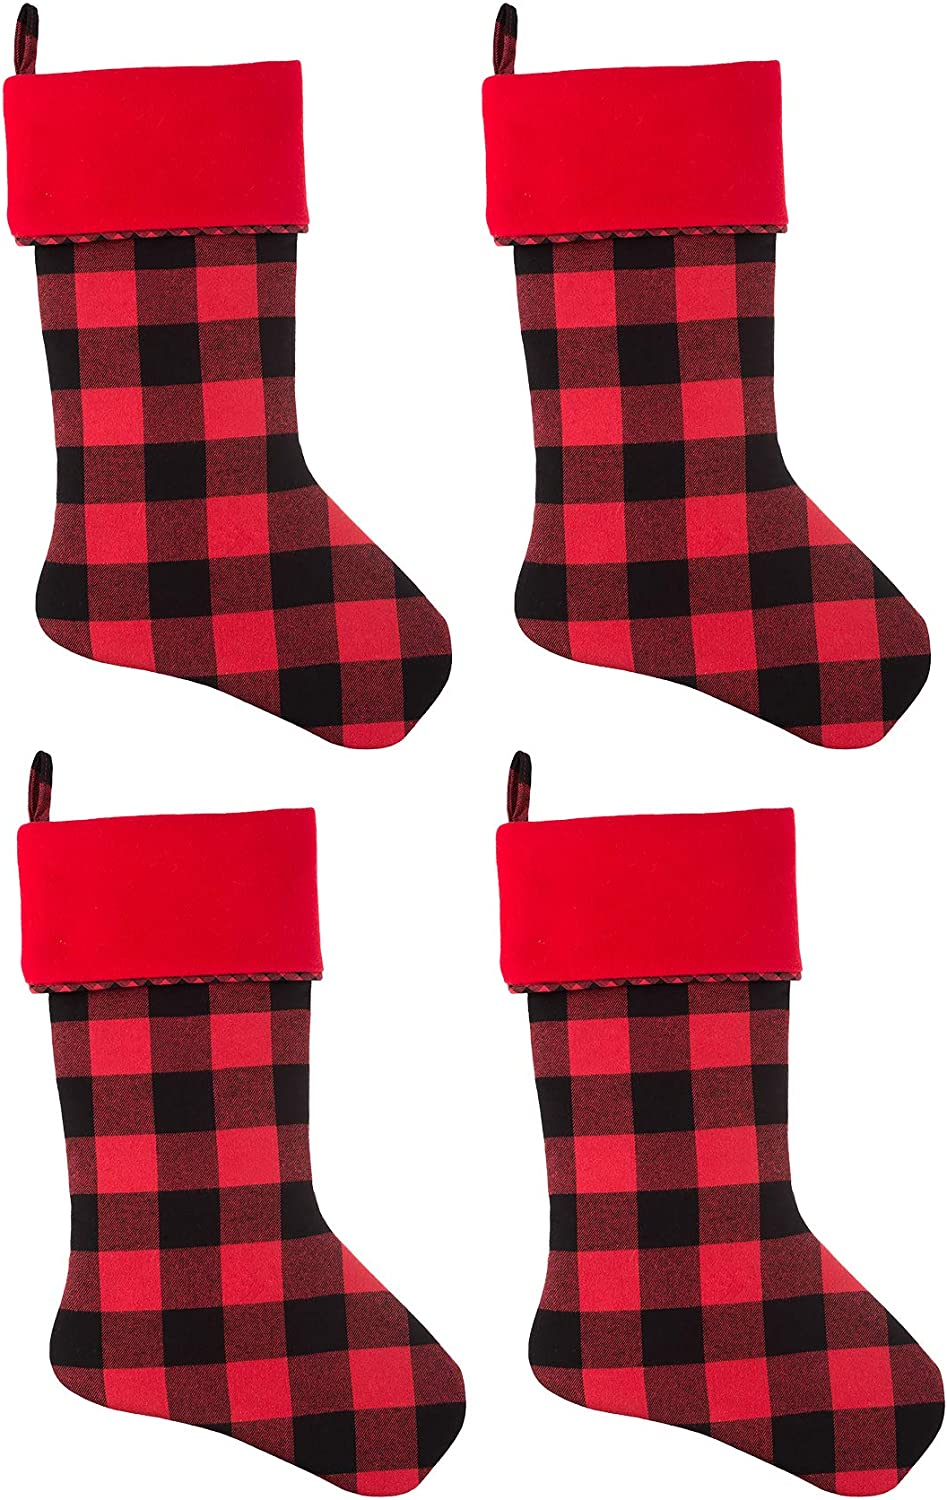 Haute Decor HangRight Buffalo Check Inch 20 Stocking Christmas A surprise price is Outlet ☆ Free Shipping realized